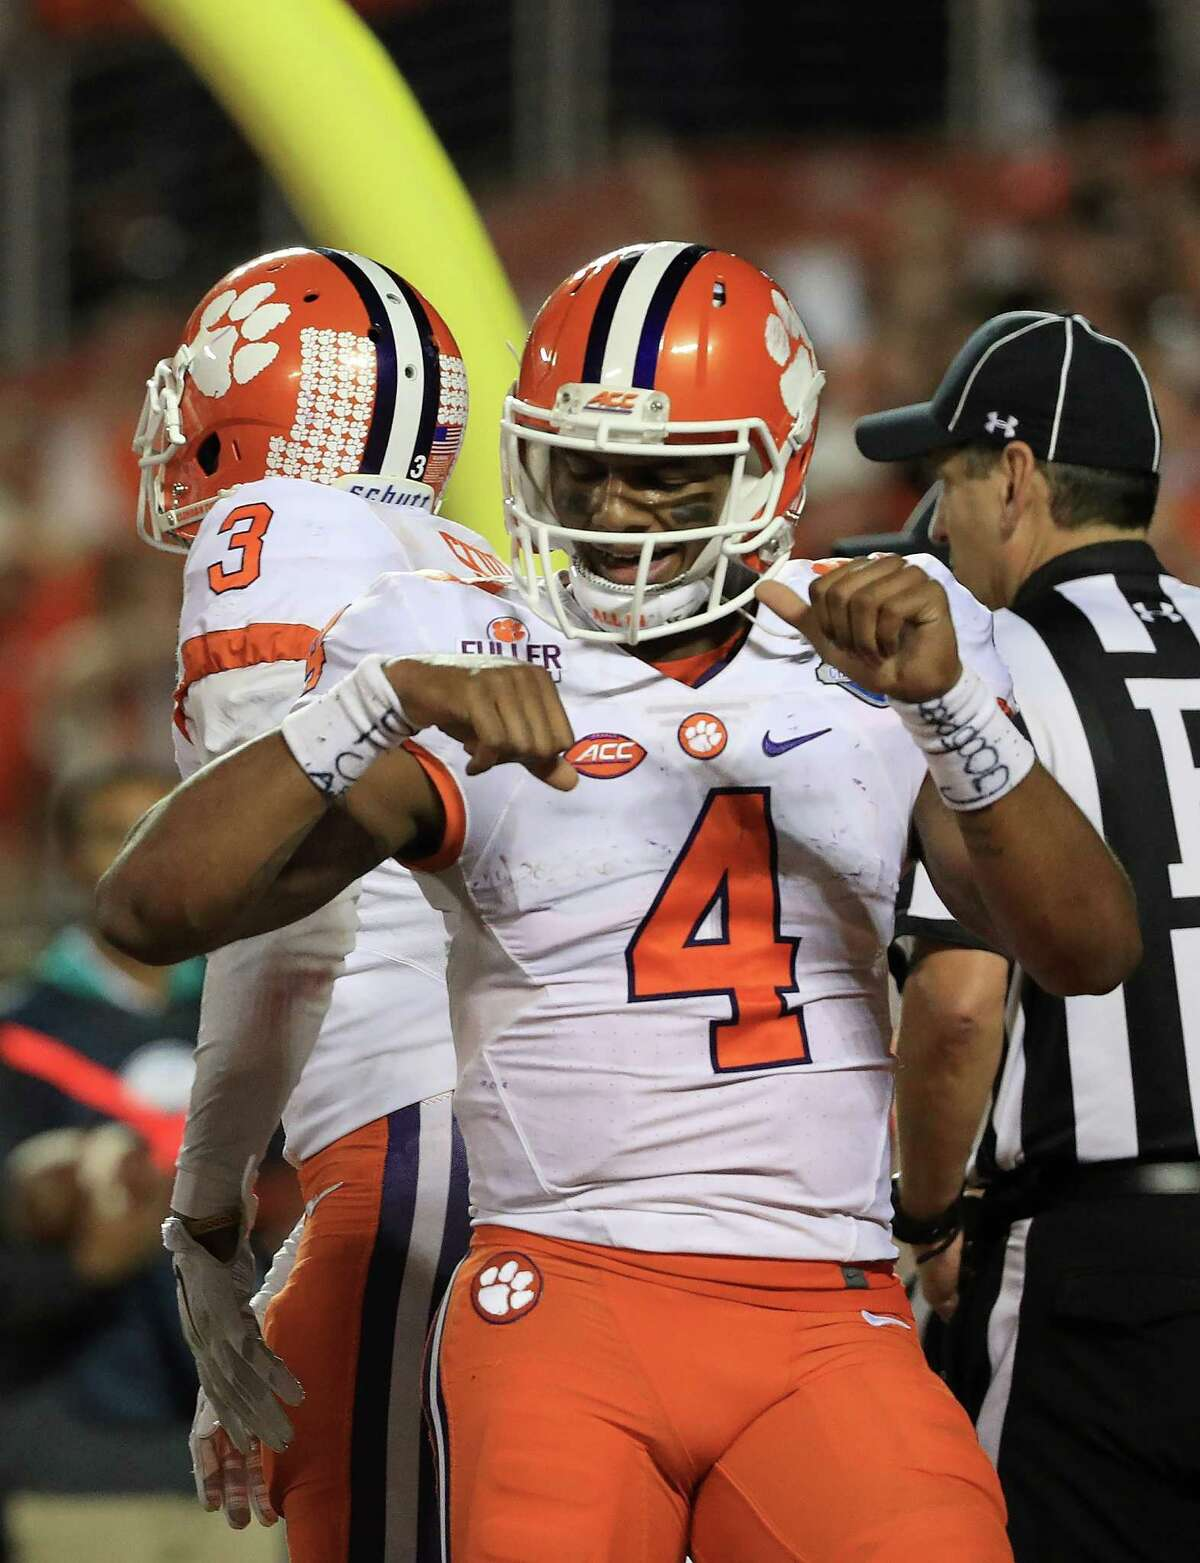 ORLANDO, FL - DECEMBER 03: Deshaun Watson #4 of the Clemson Tigers celebrates a touchdown the ACC Championship against the Virginia Tech Hokies on December 3, 2016 in Orlando, Florida. (Photo by Mike Ehrmann/Getty Images)